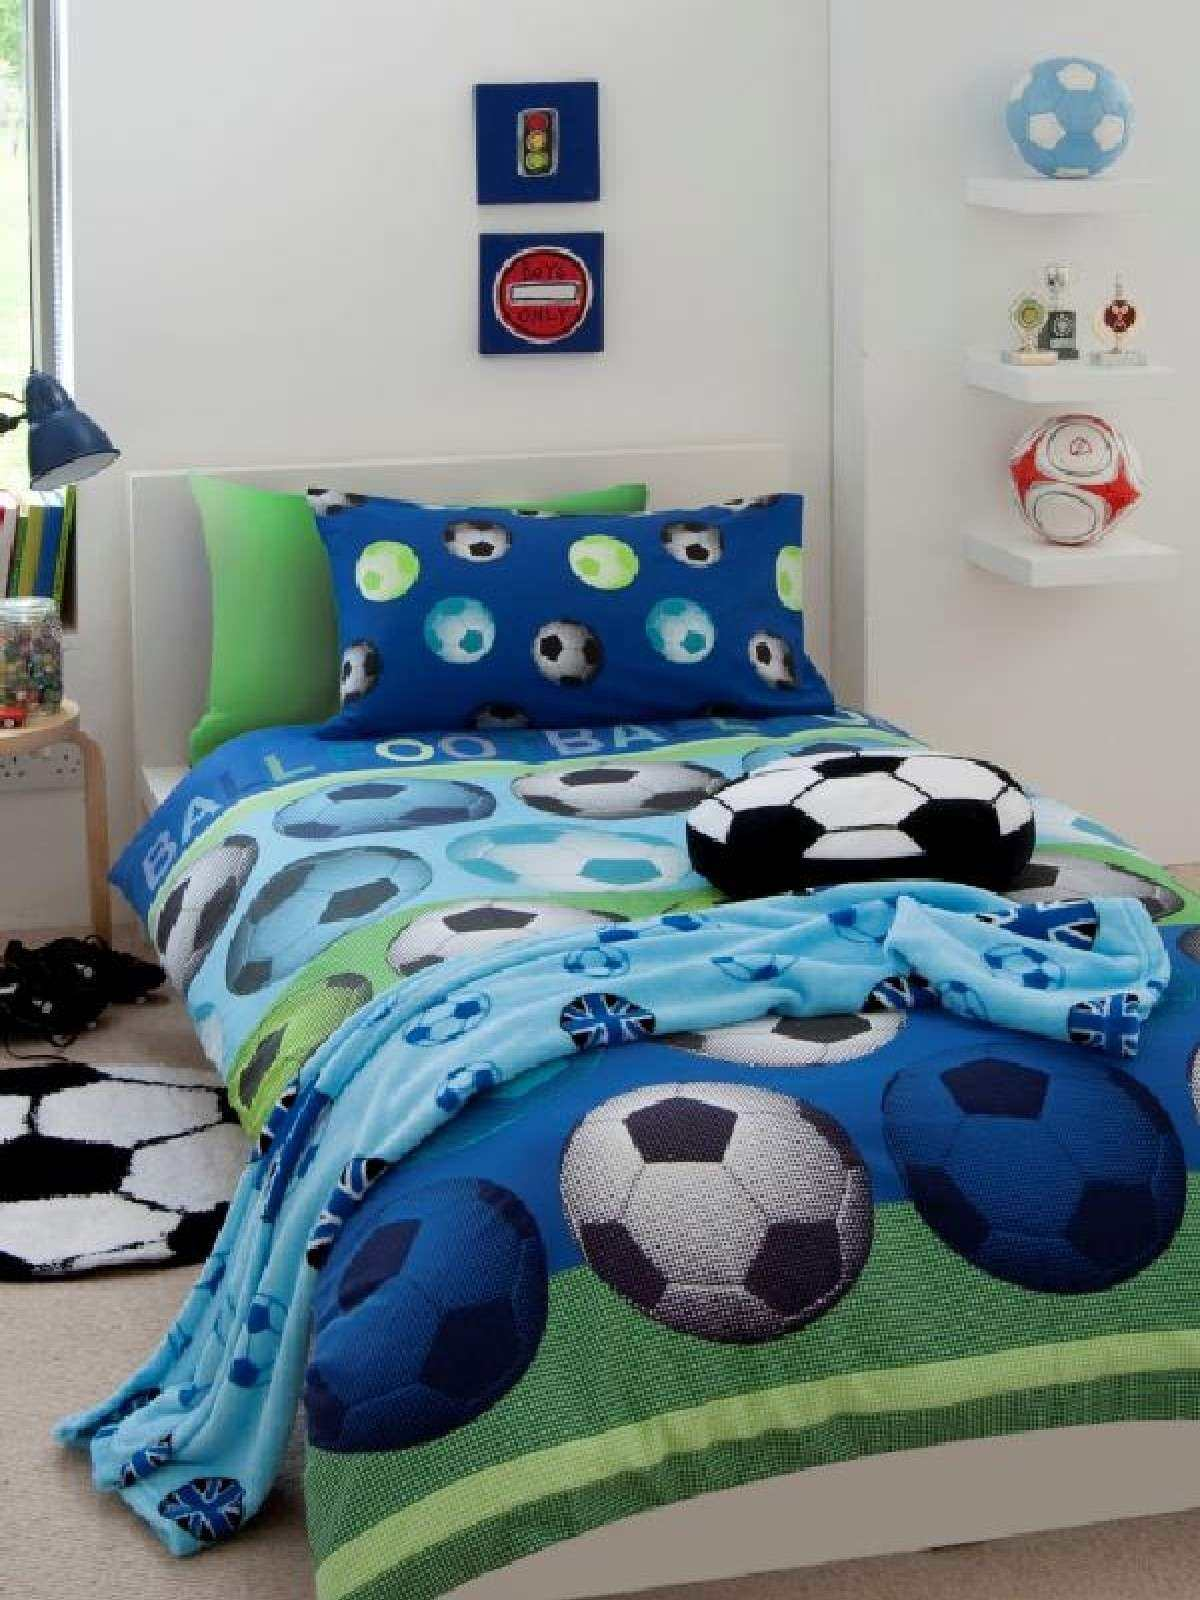 housse de couette football 200x 200cm parure de lit. Black Bedroom Furniture Sets. Home Design Ideas